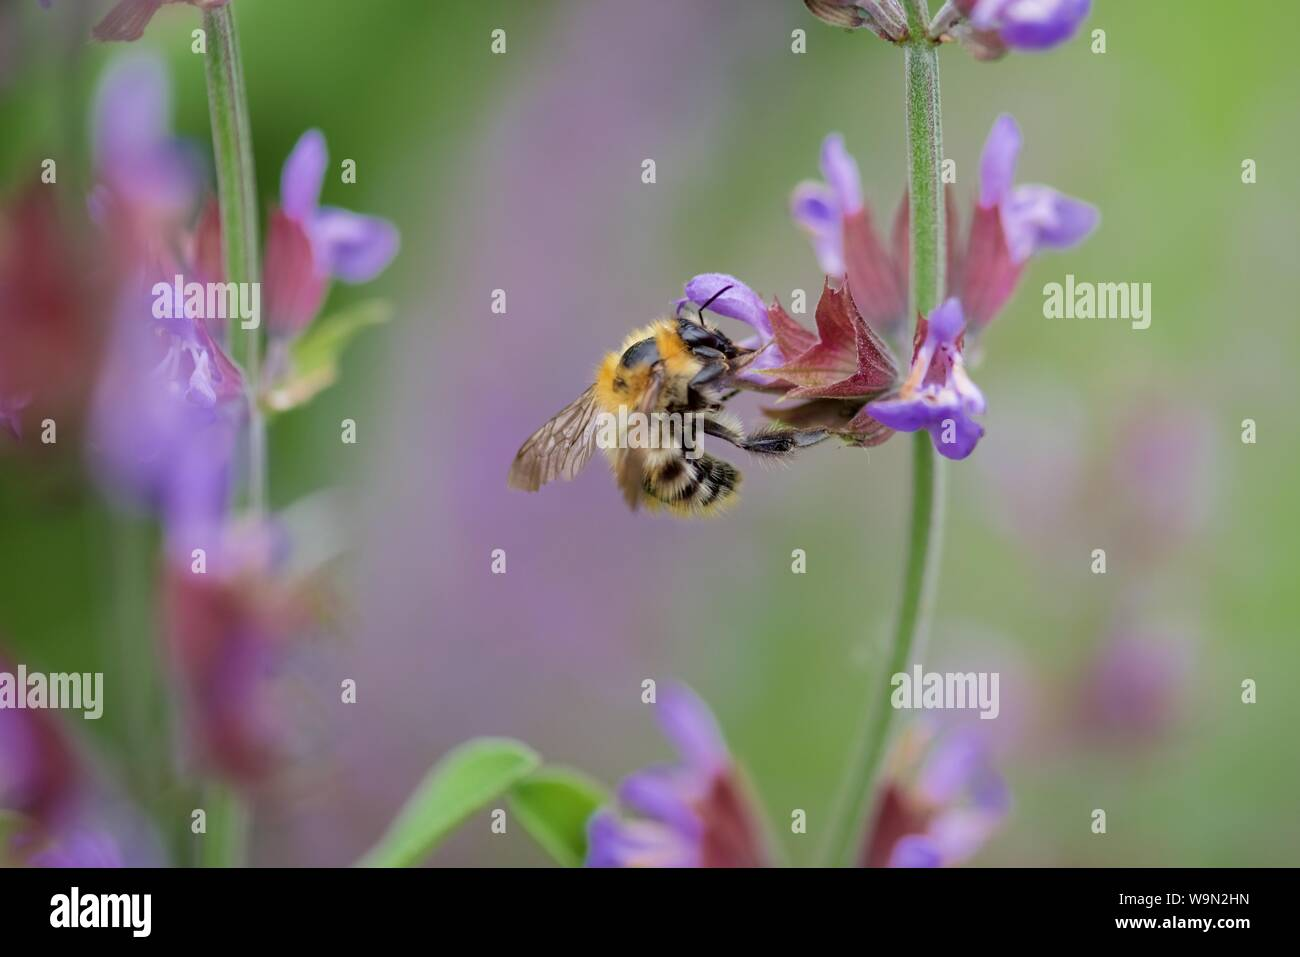 Bumble bee (Bombus): a single bumble bee collecting nectar from a flowering Sage Stock Photo